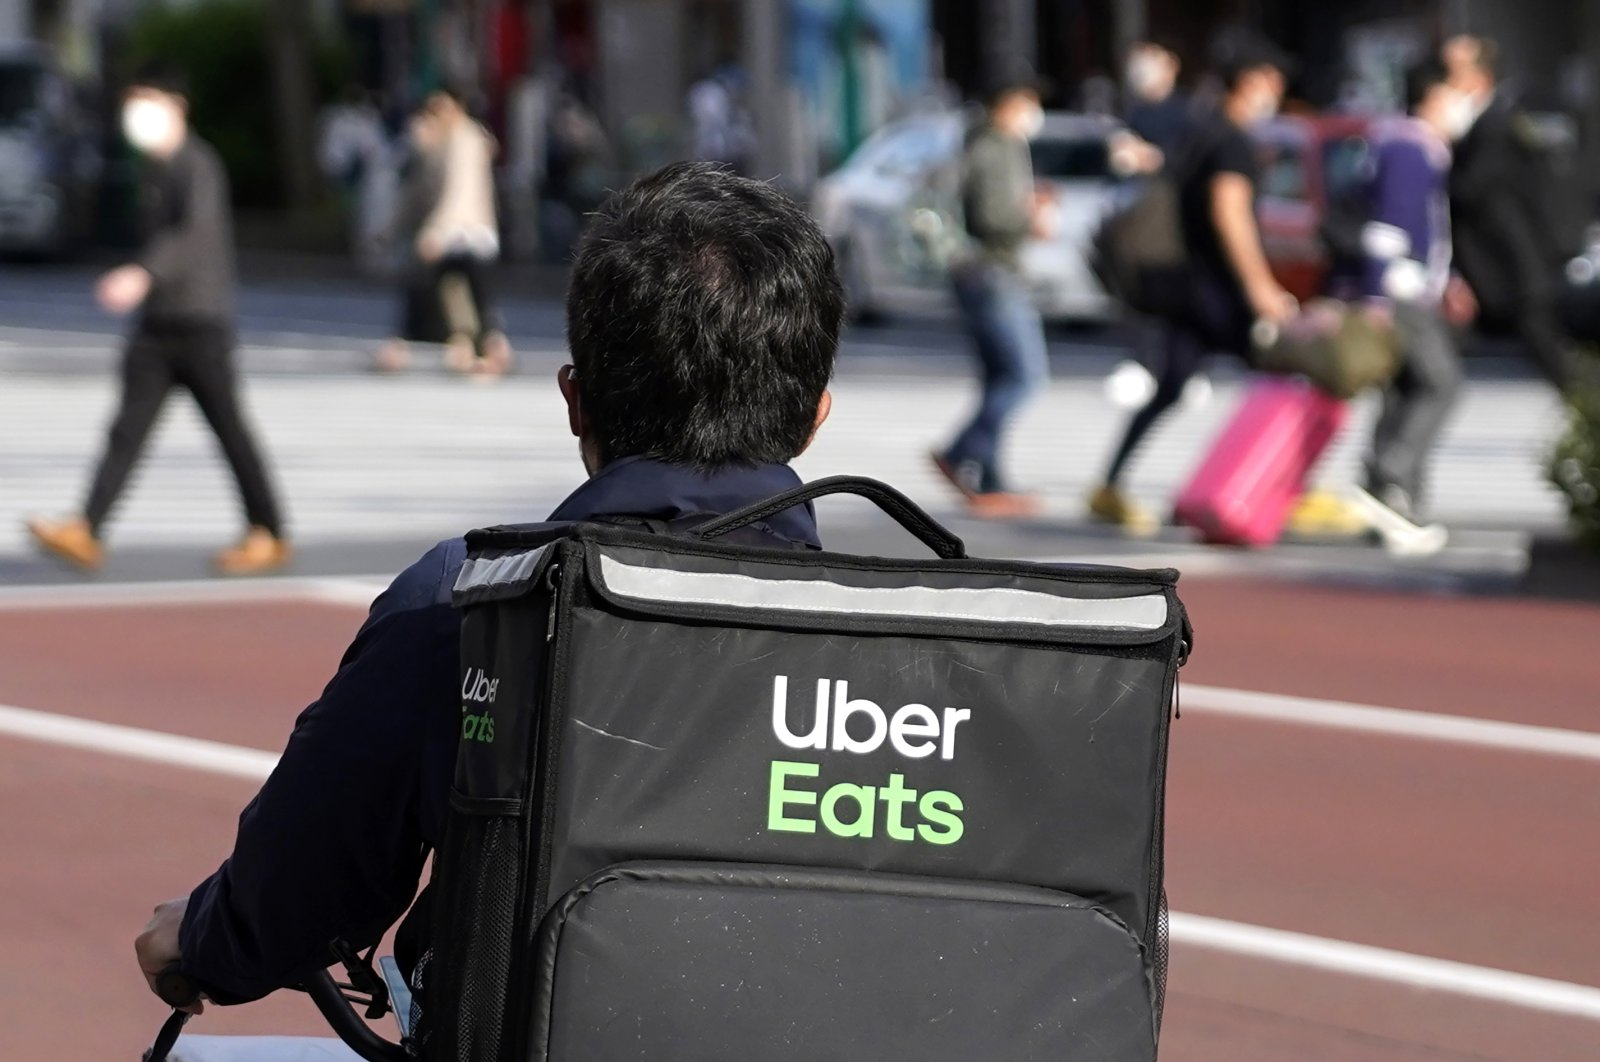 An Uber Eats delivery person rides a bicycle through the Shinjuku district in Tokyo, Japan, April 28, 2021. (AP File Photo)